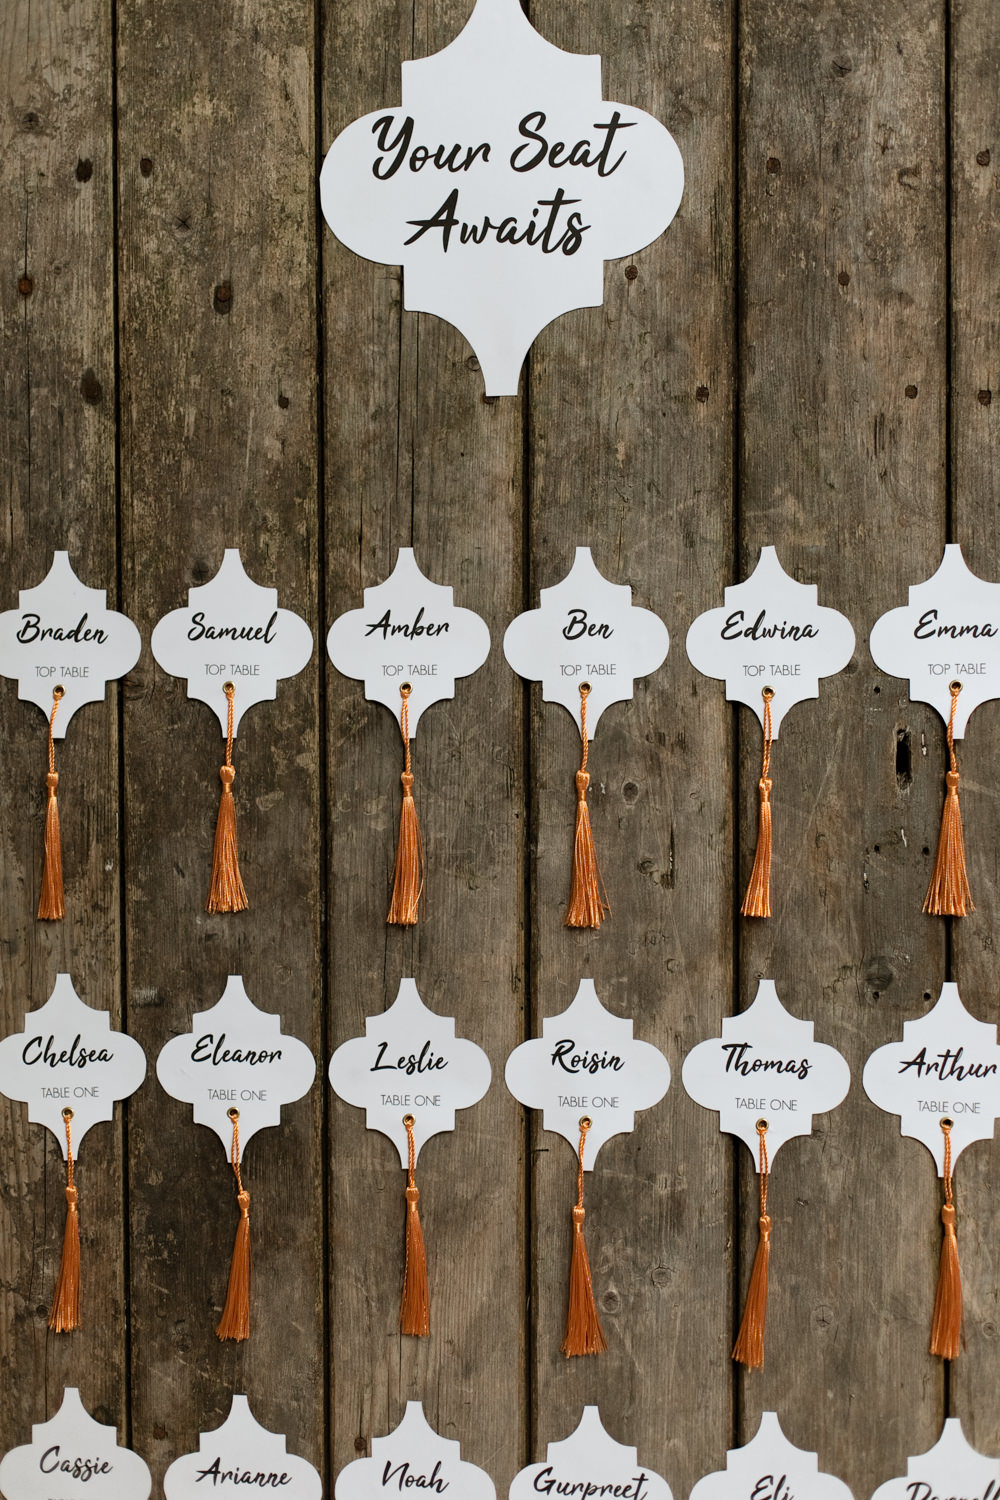 Table Plan Seating Chart Wooden Rustic Tassels Moroccan Wedding Ideas Emma Louise Photography